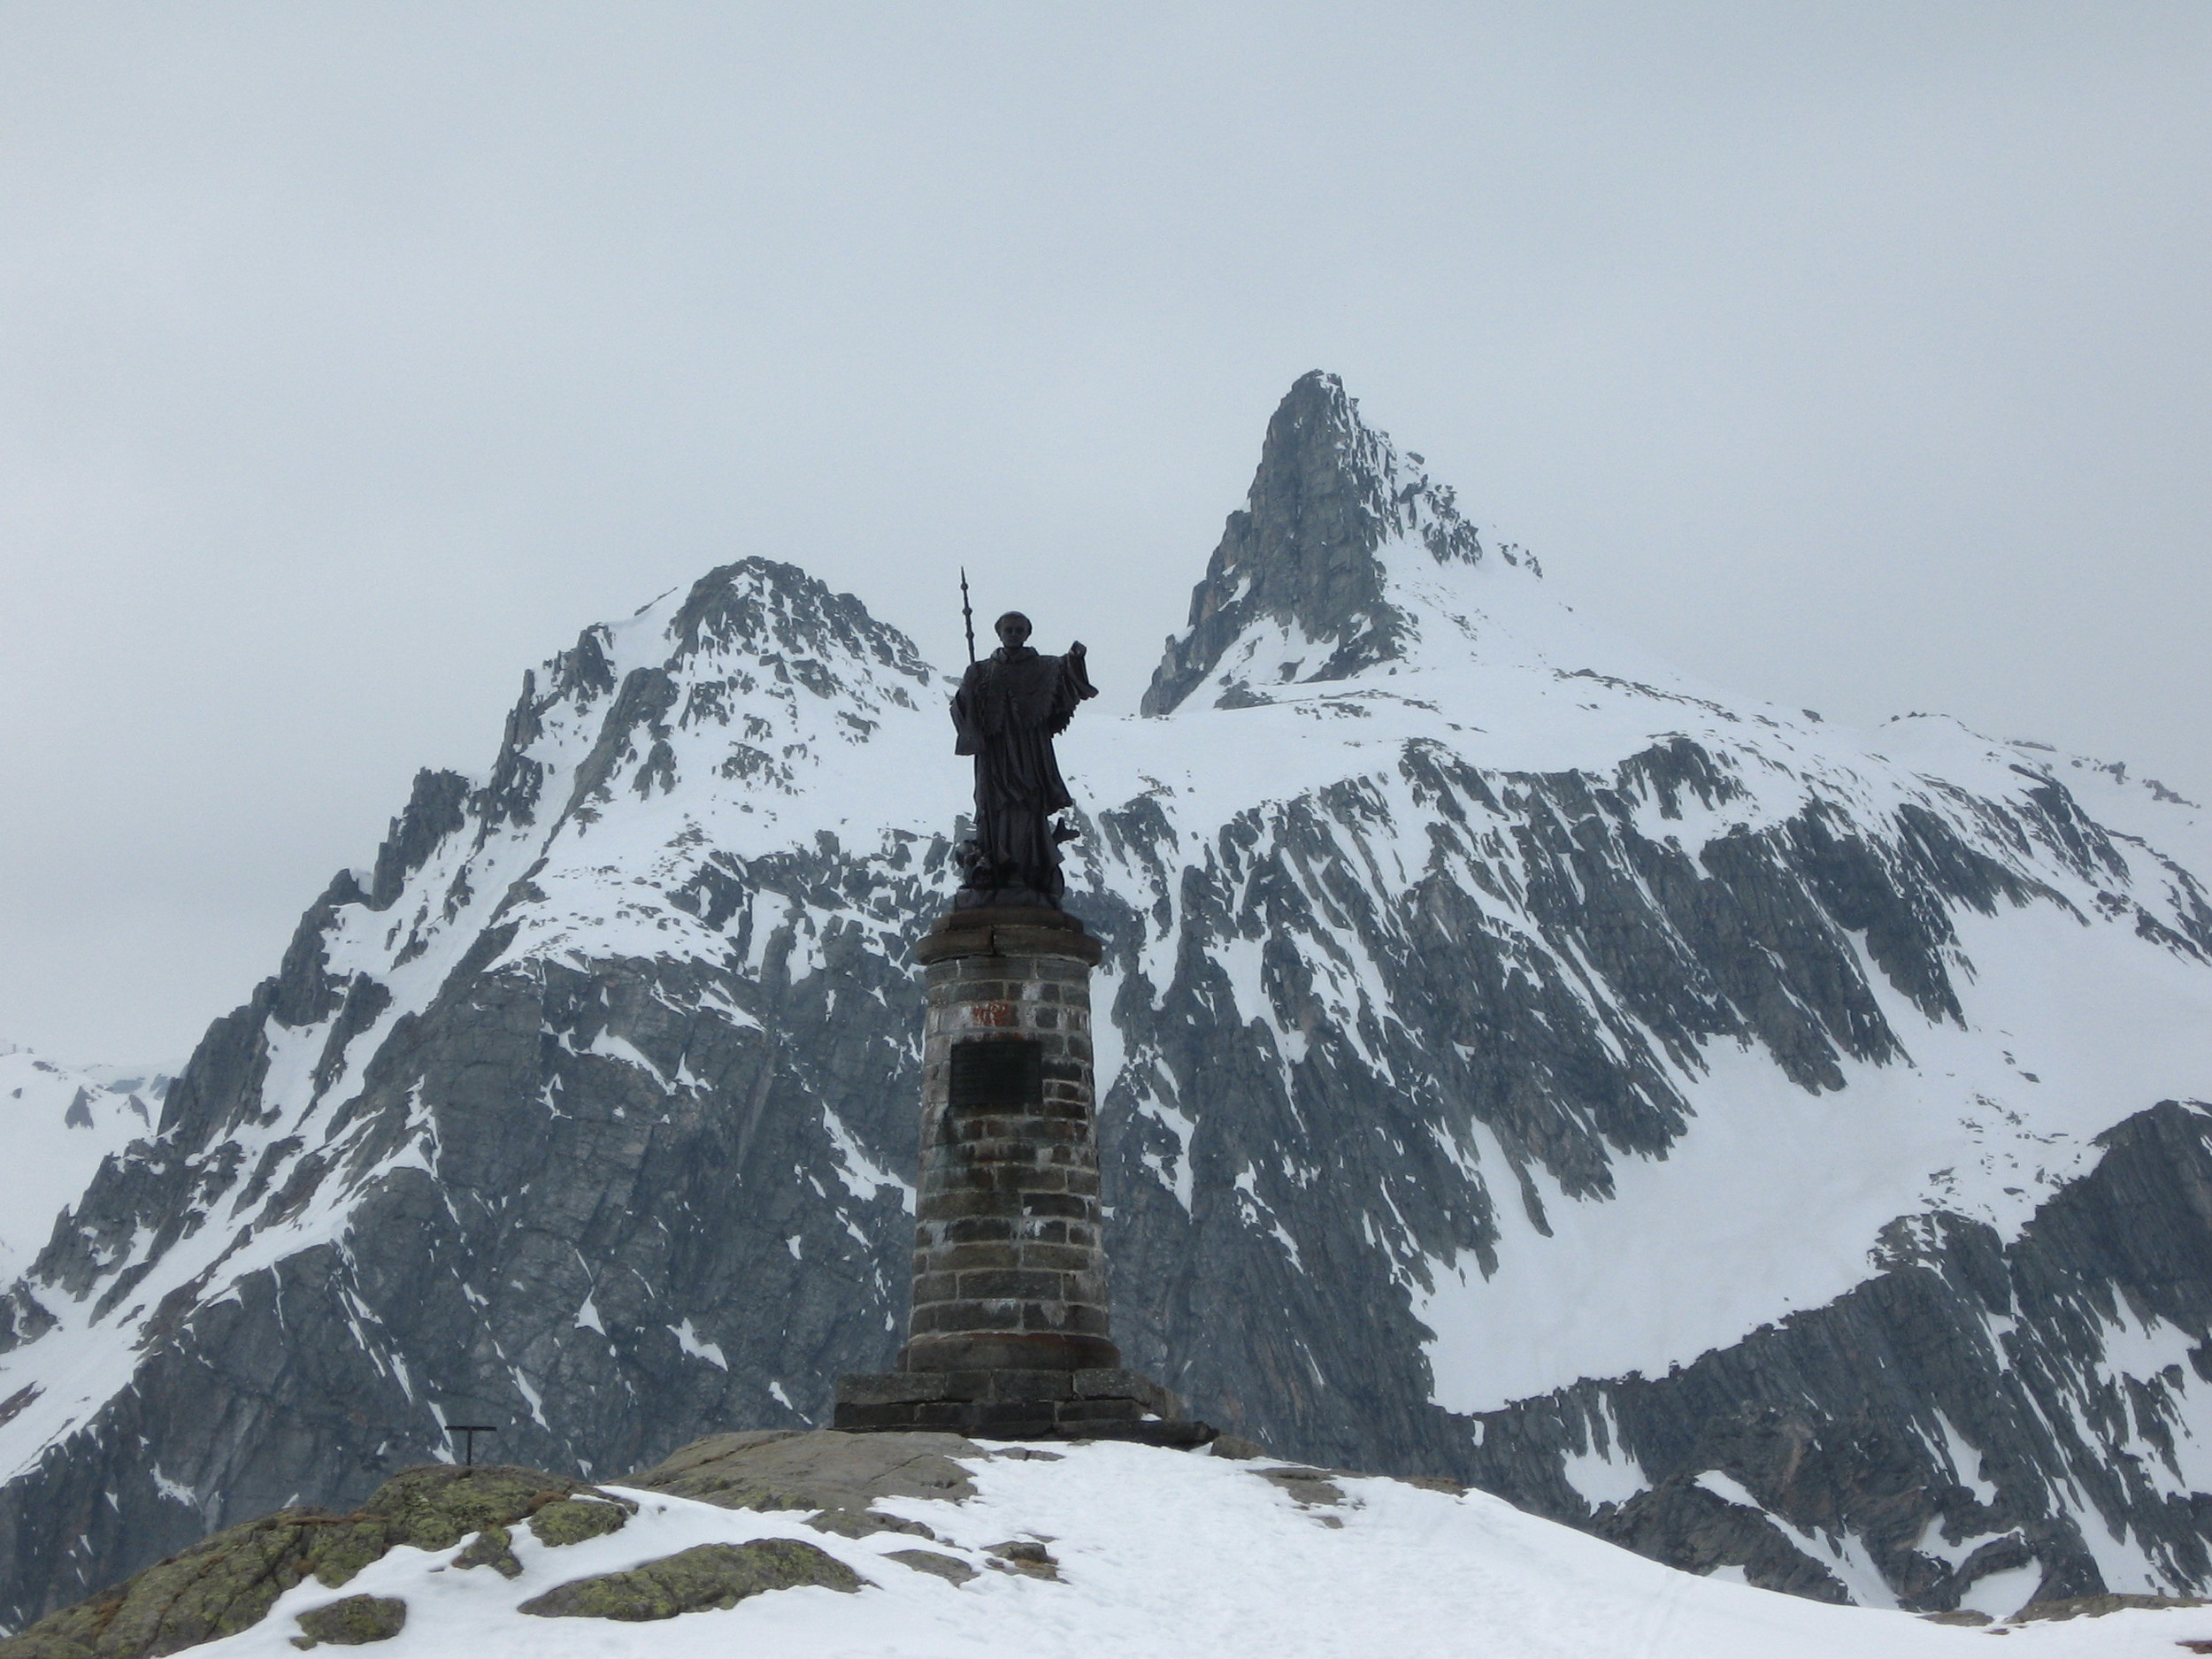 Day 2: St. Bernard welcomes us to his pass